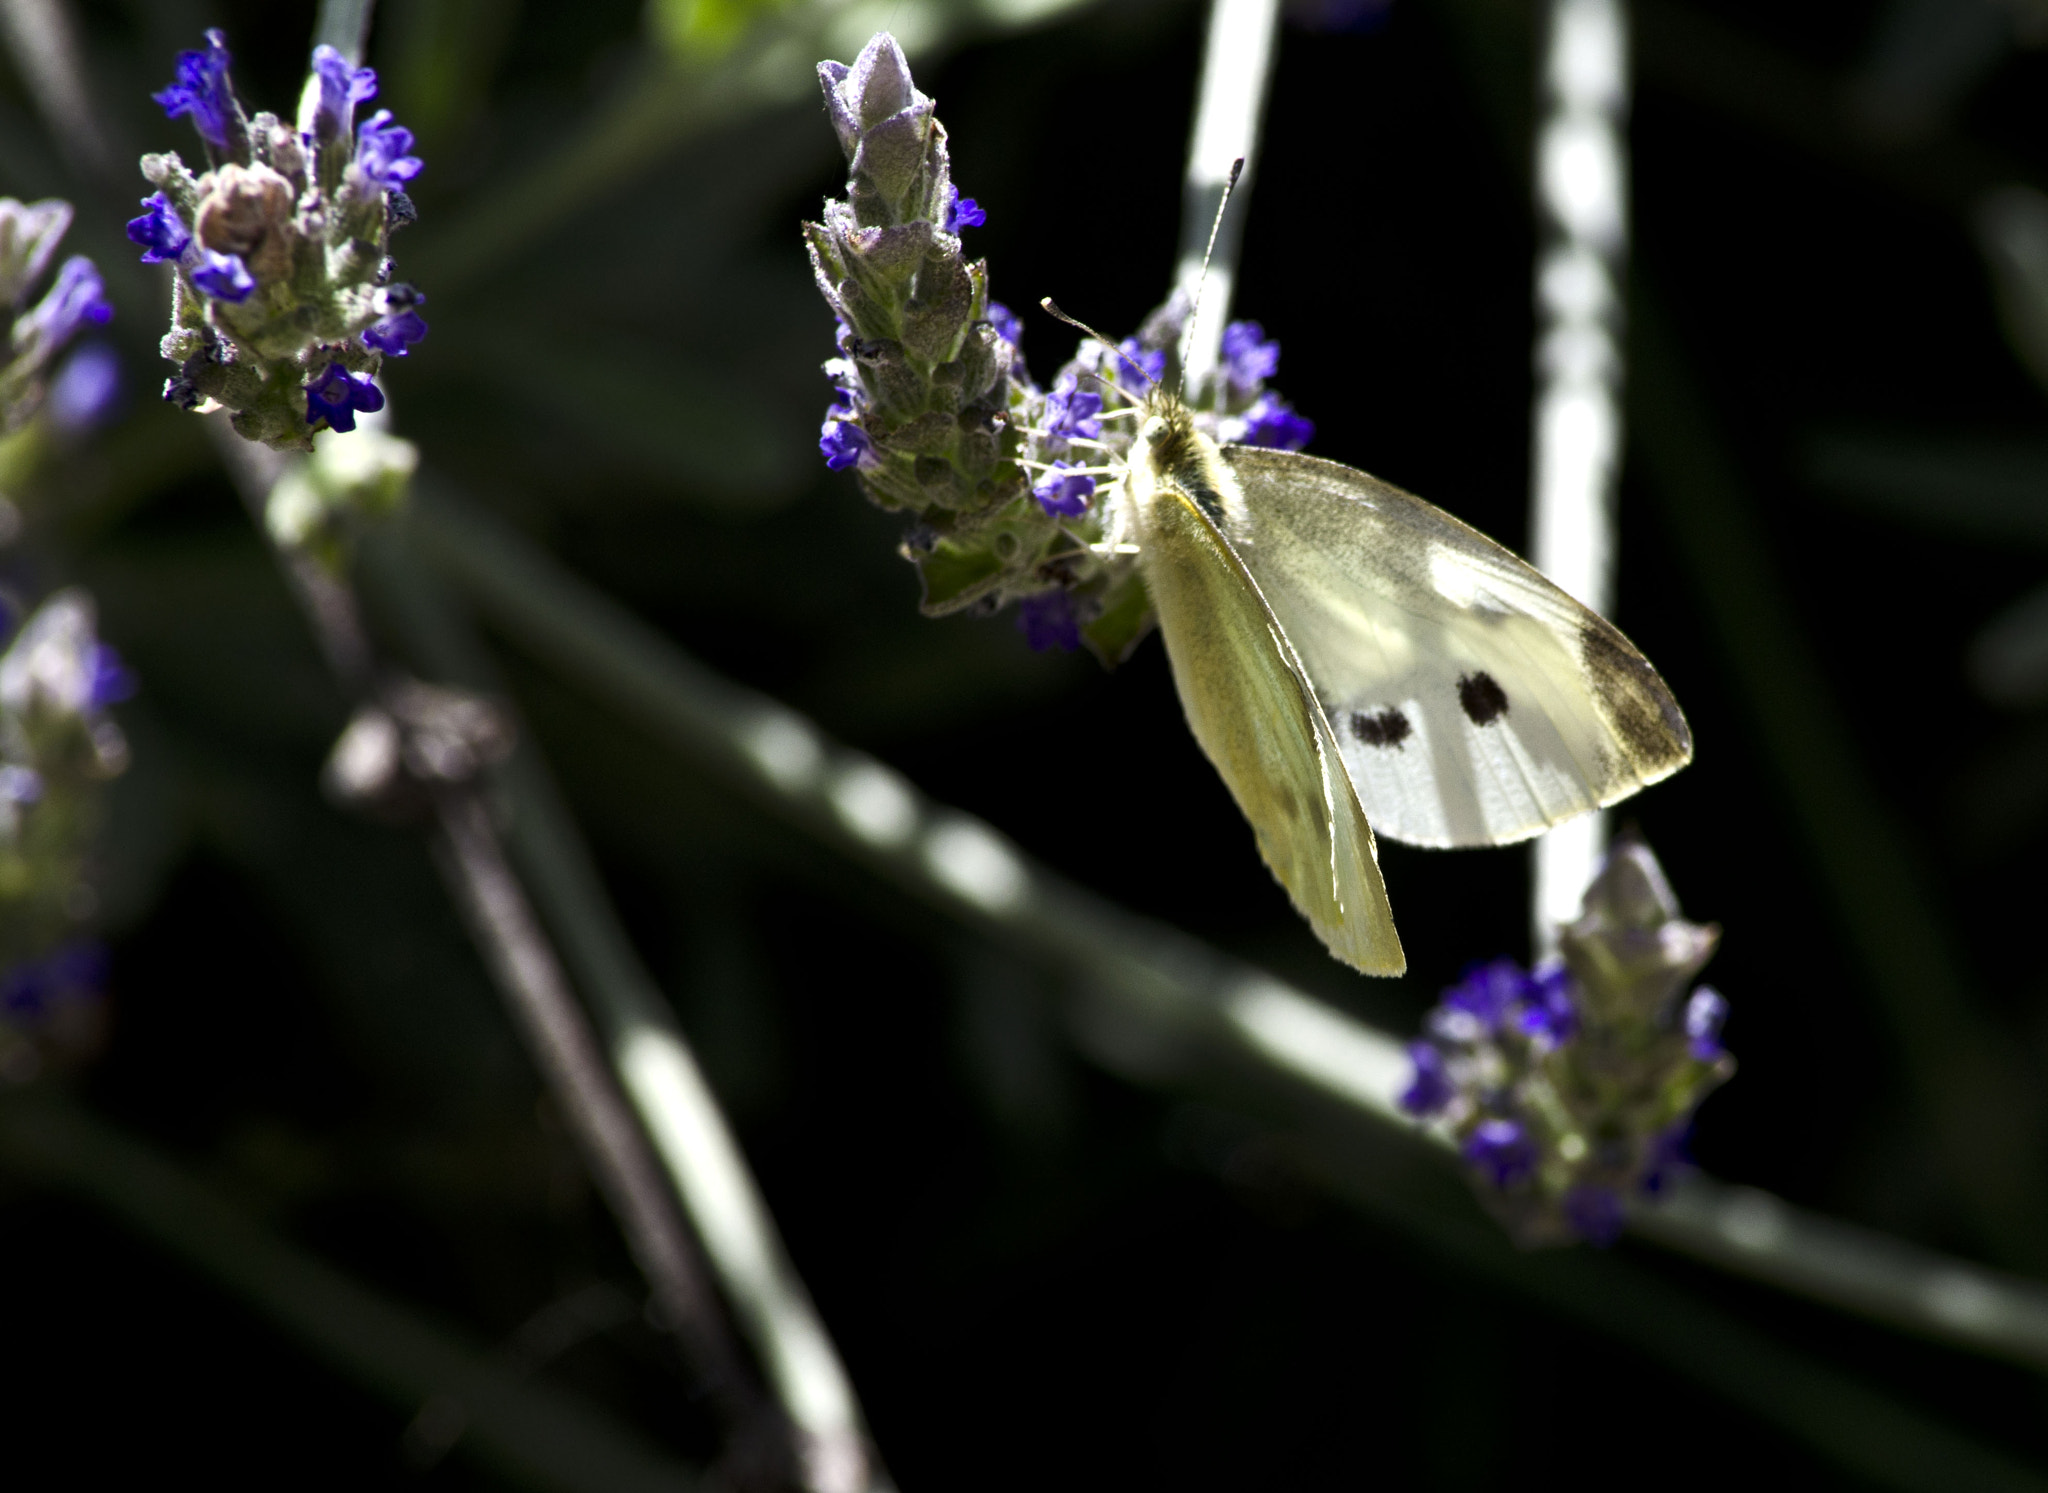 Photograph Butterfly by Michael Sheltzer on 500px